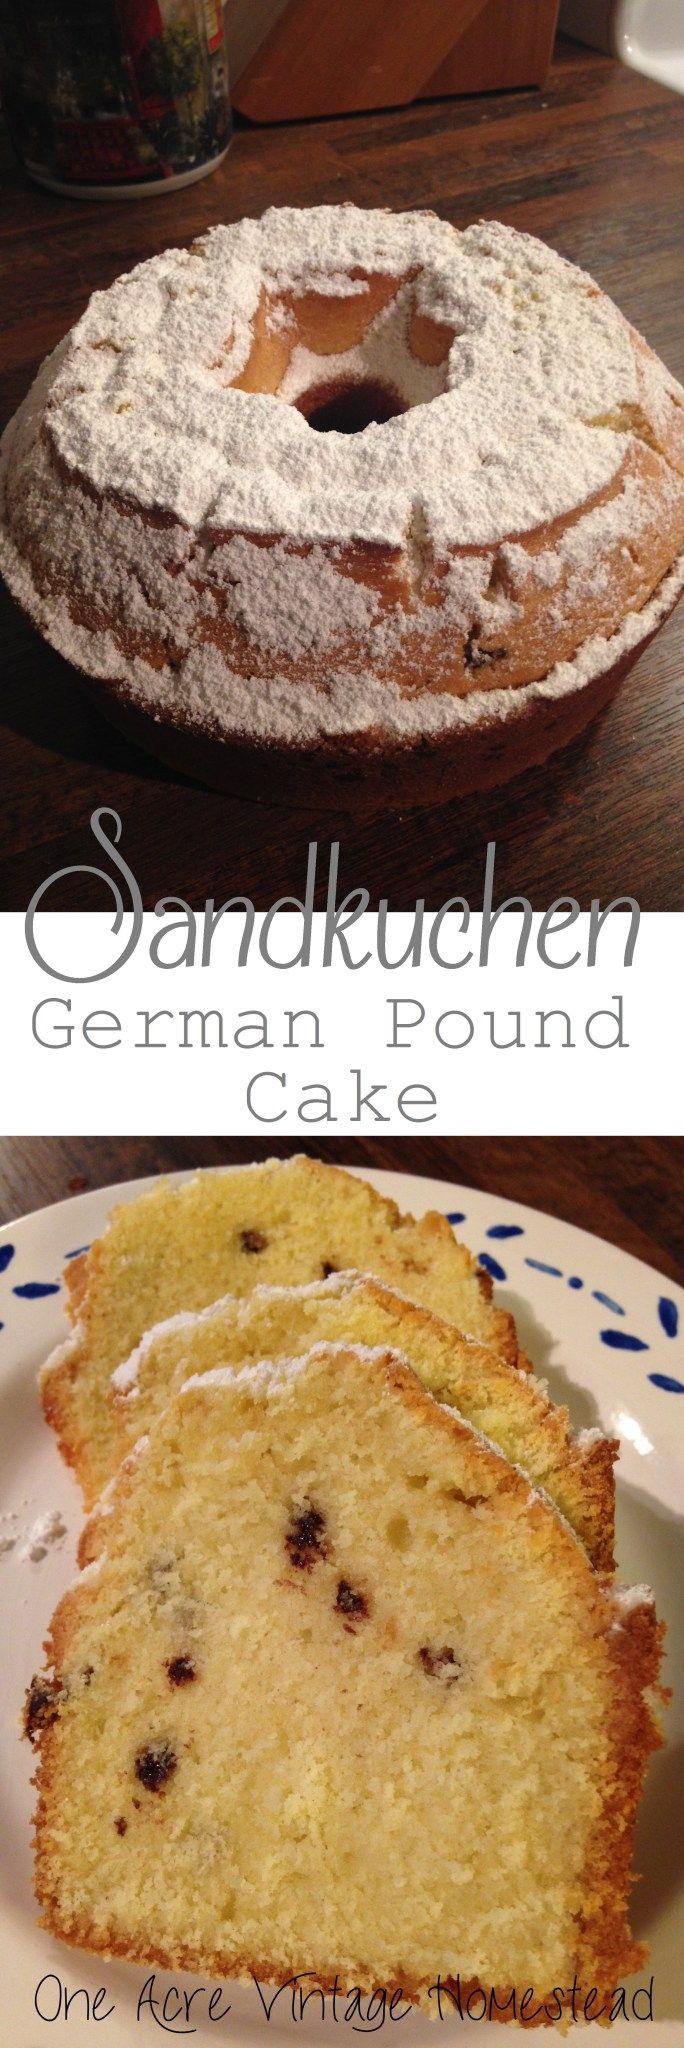 "This is such a great recipe, just like I remembered when I would go to Bamberg, Germany for the many summer vacations. My Oma would bake this pound cake and serve it during breakfasts and tea time. It is moist in the middle with a crispy edge. Add mini chocolate chips for a different variety. The large difference between this German pound cake recipe and the American variety is that this recipe is made with cornstarch. The cornstarch gives the cake such a different texture then the ""norma..."